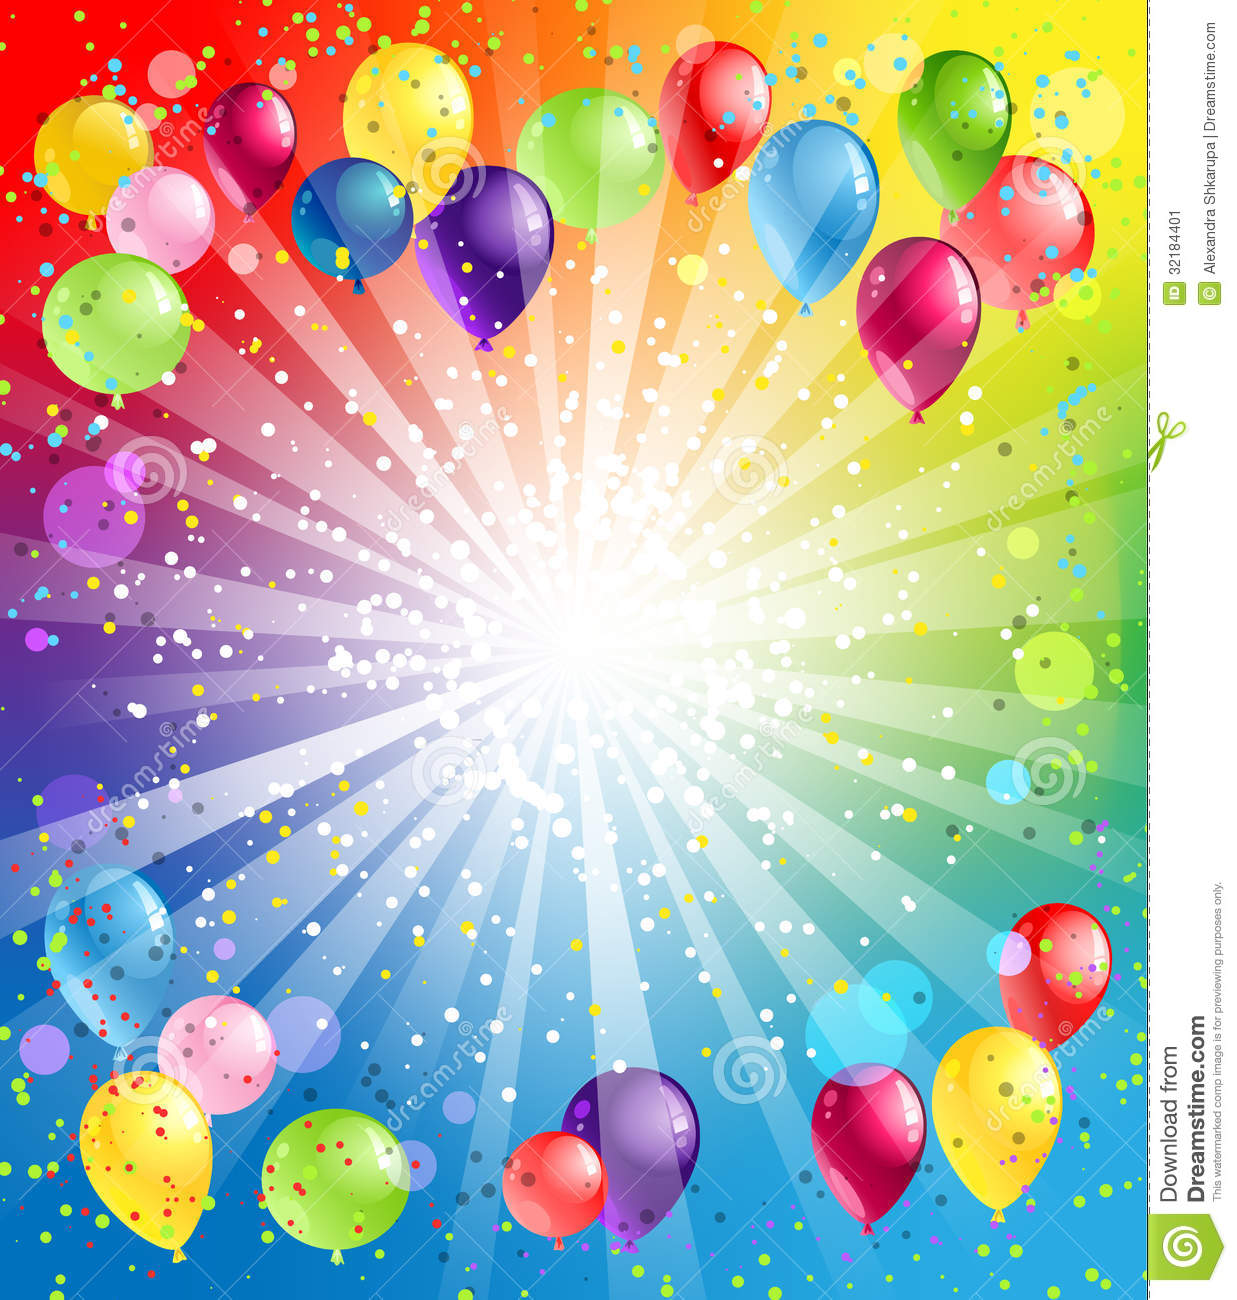 Festive background with balloons with space for text.